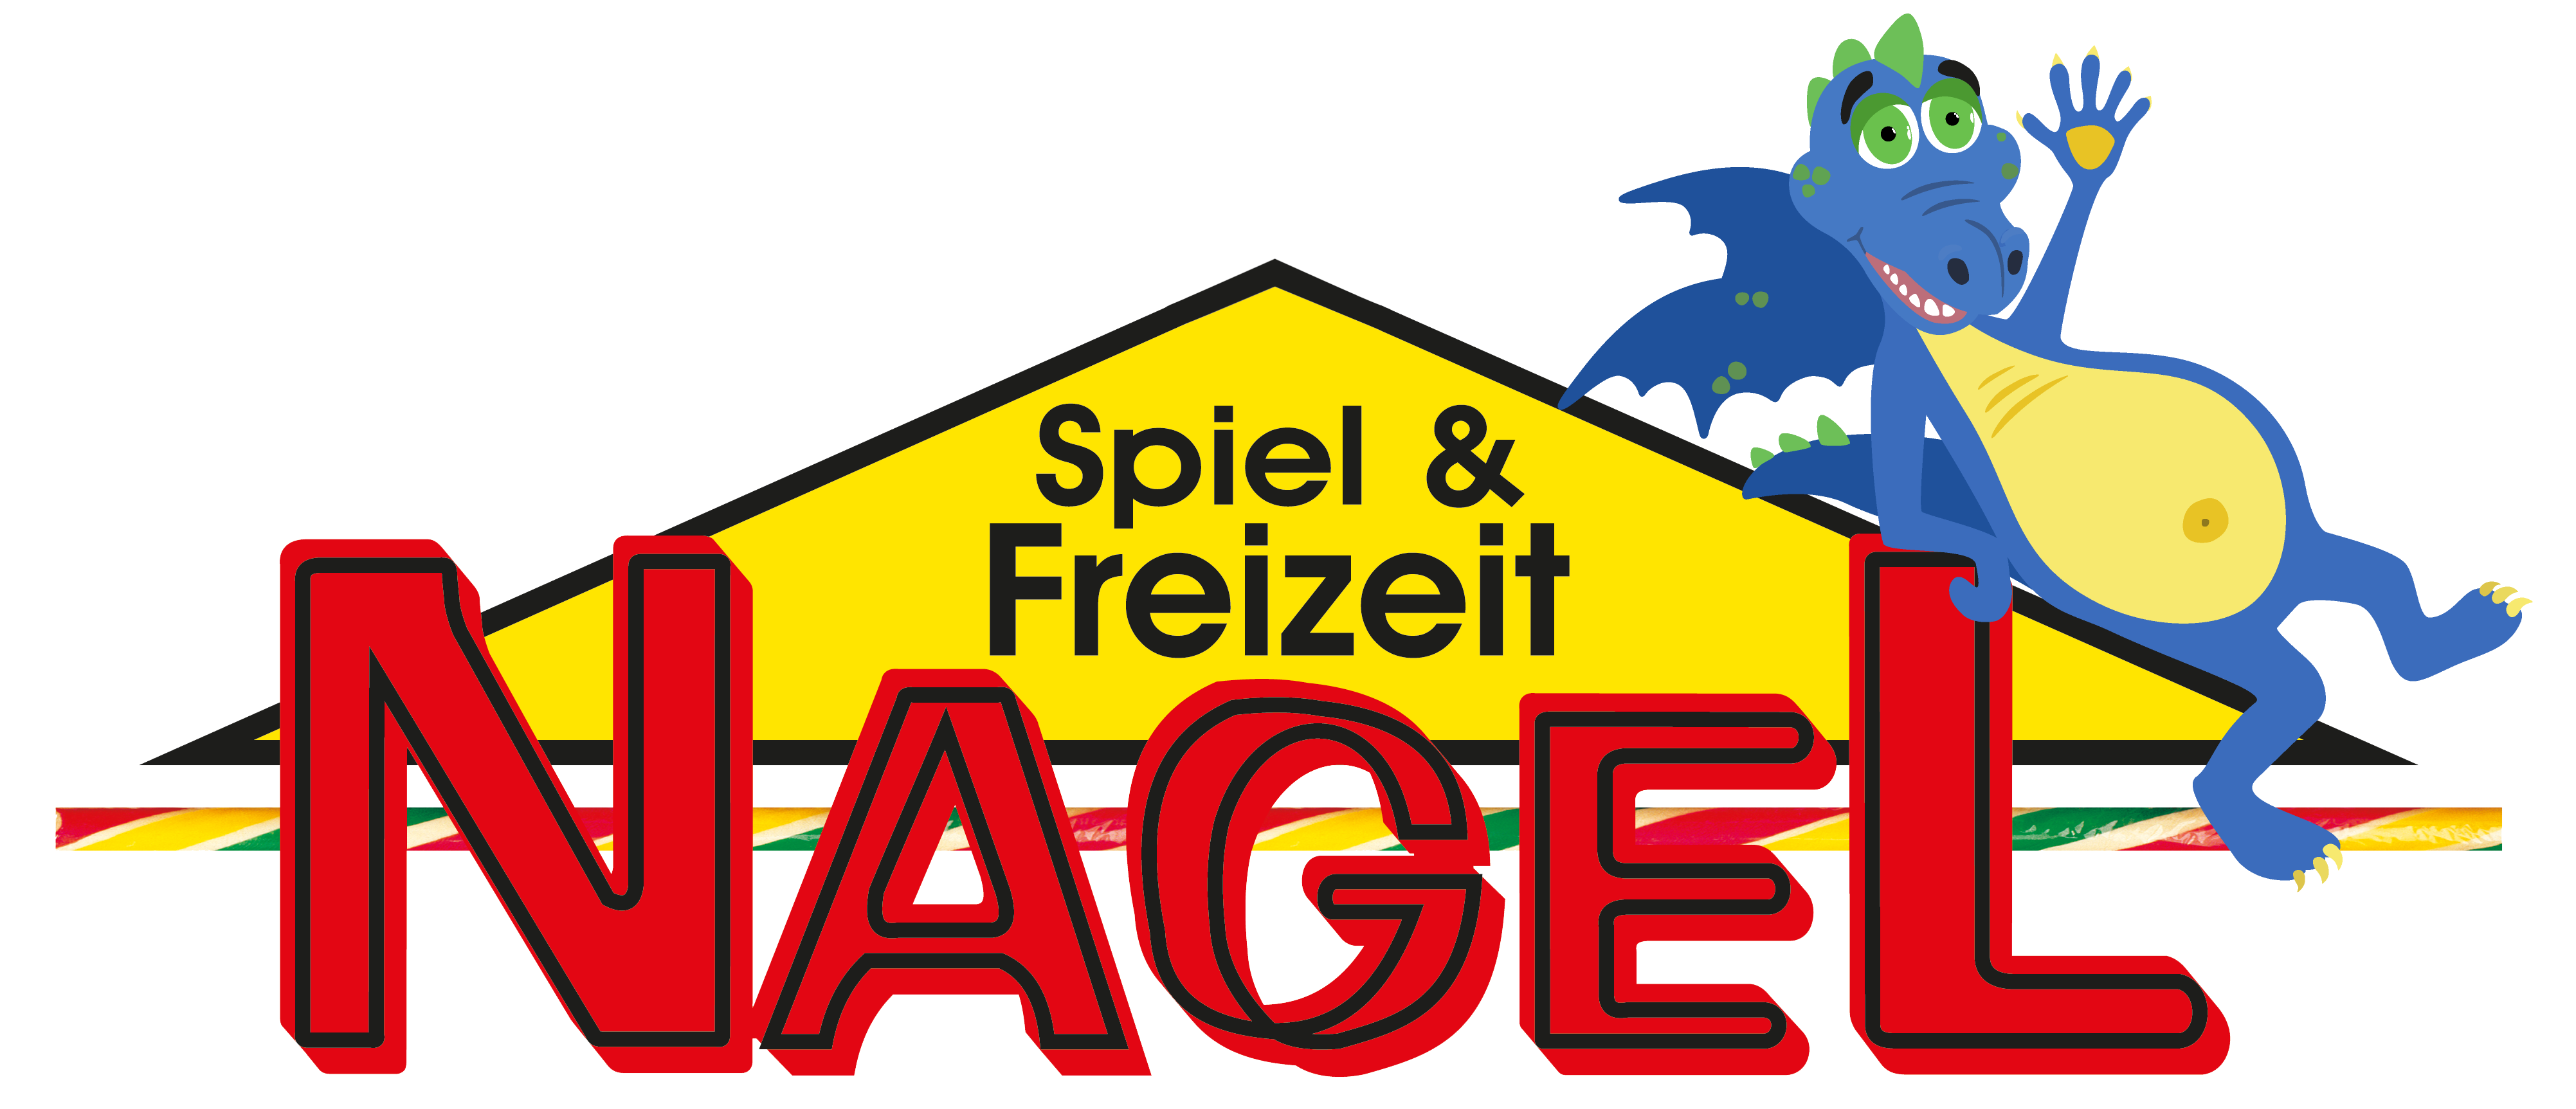 Spiel + Freizeit Nagel -  Ihr Spielwarengeschäft in Georgsmarienhütte / Oesede bei Osnabrück